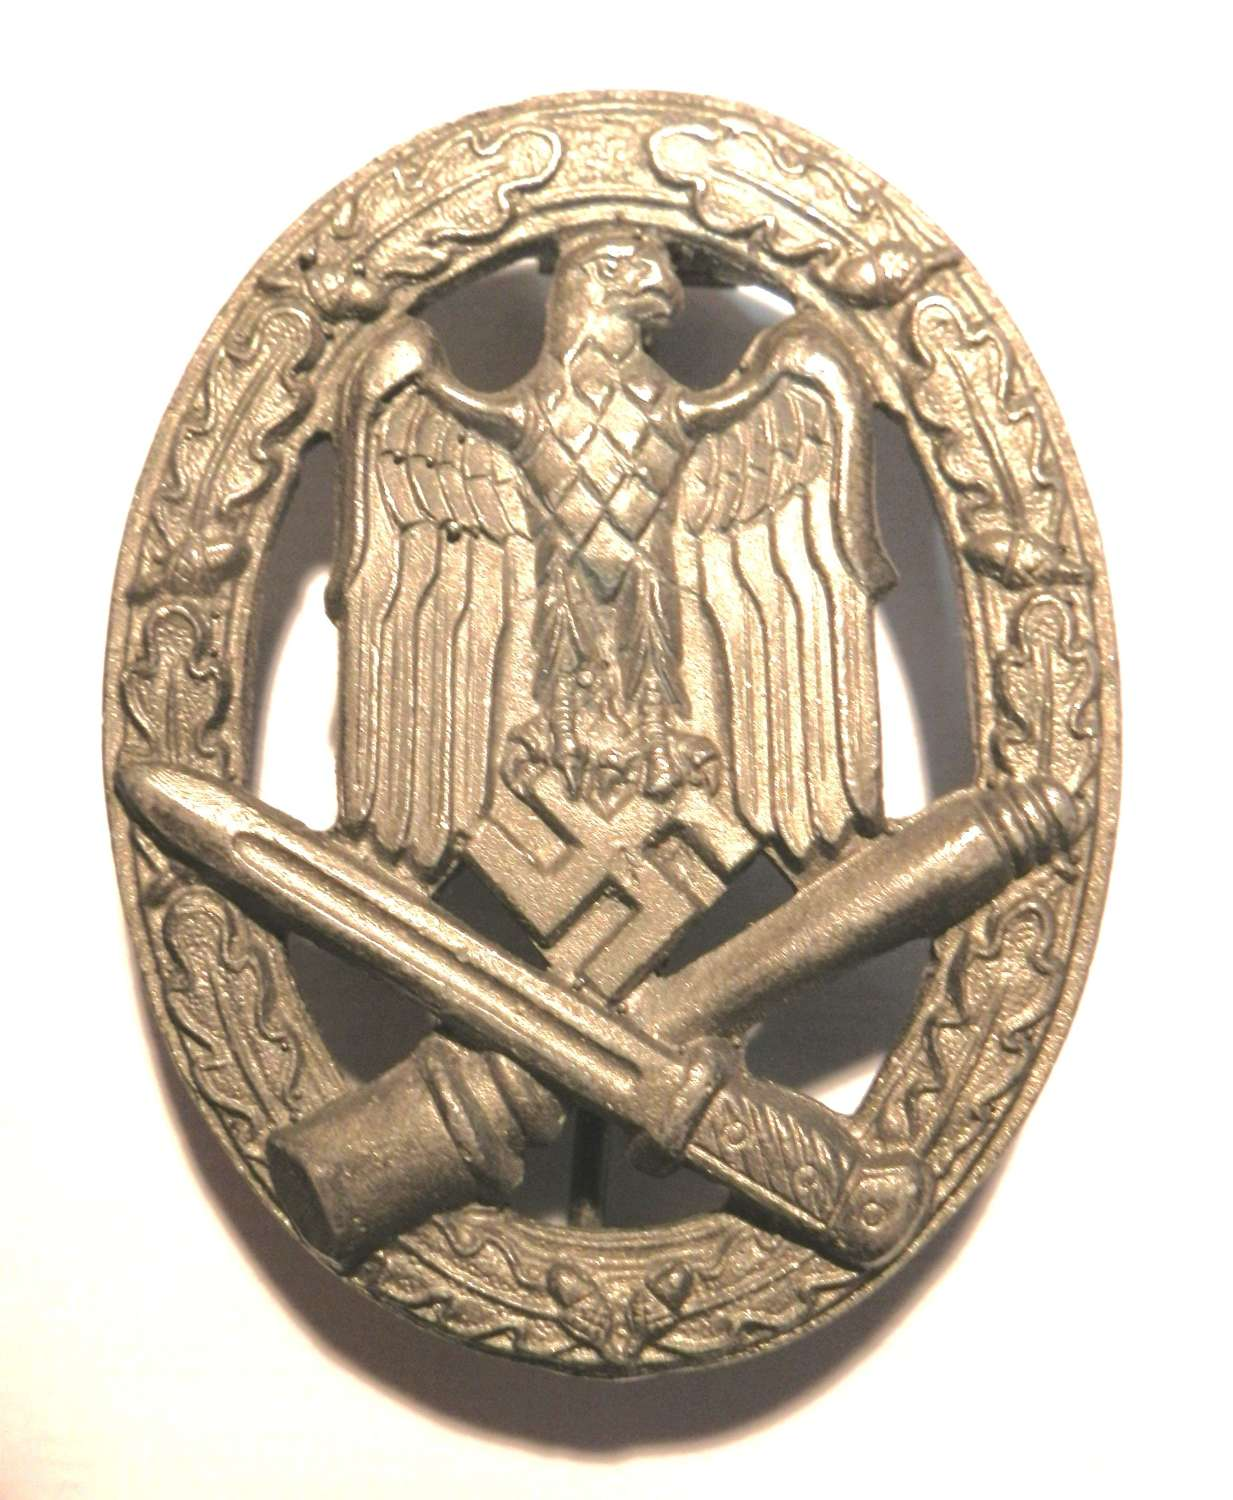 German General Assault Badge. Maker marked F.O.